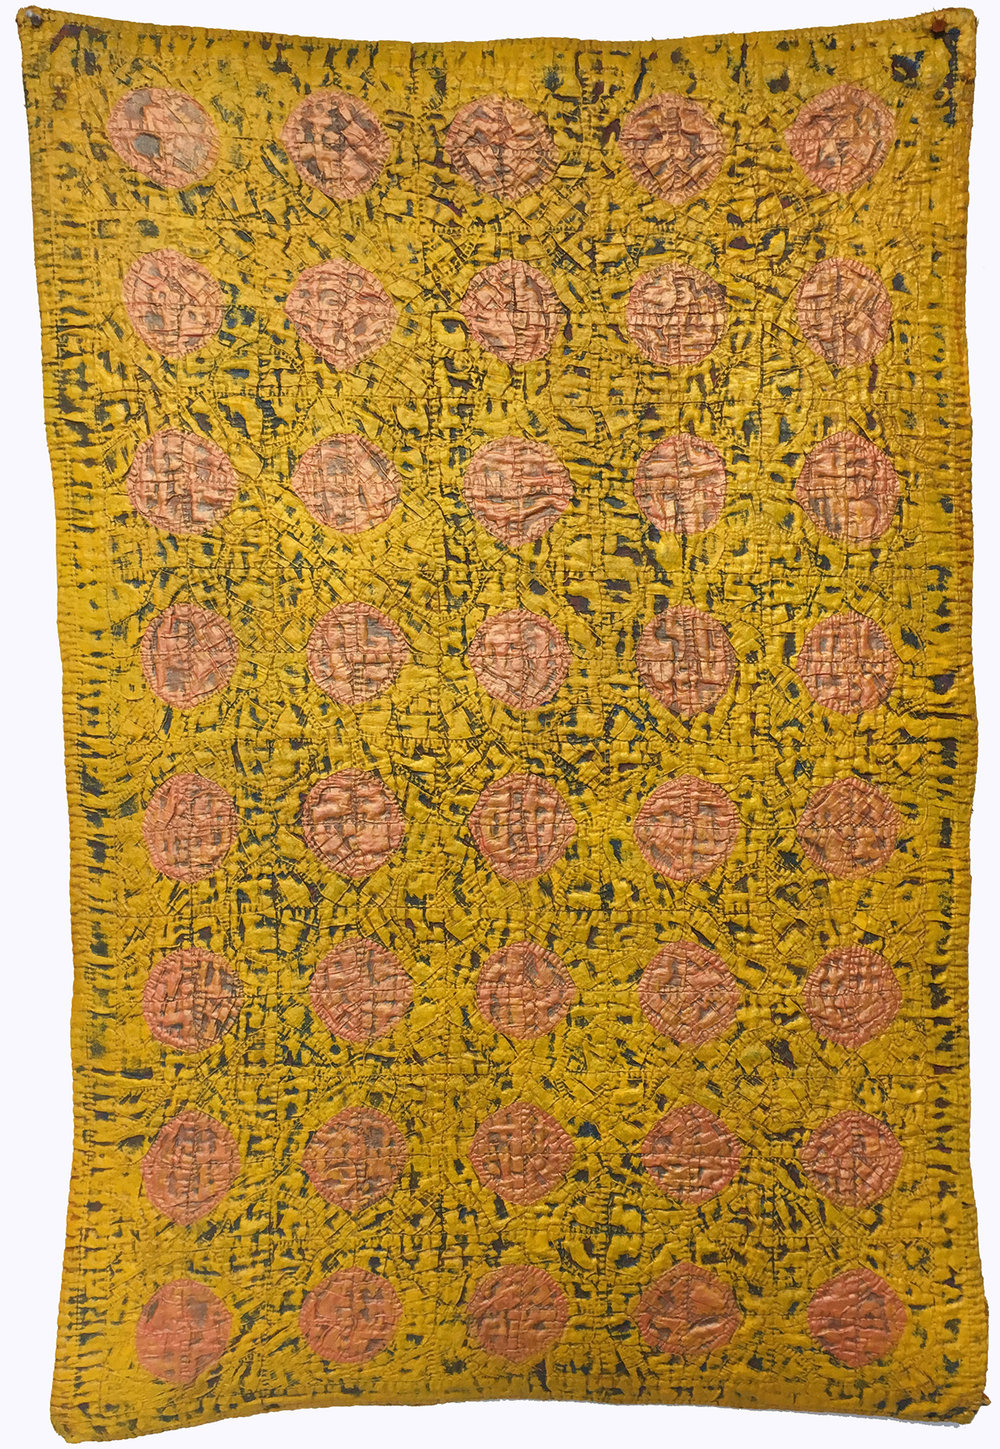 """FIreball"" by Denise Furnish, 43x29in, discarded fireball crib quilt, acrylic, $1200